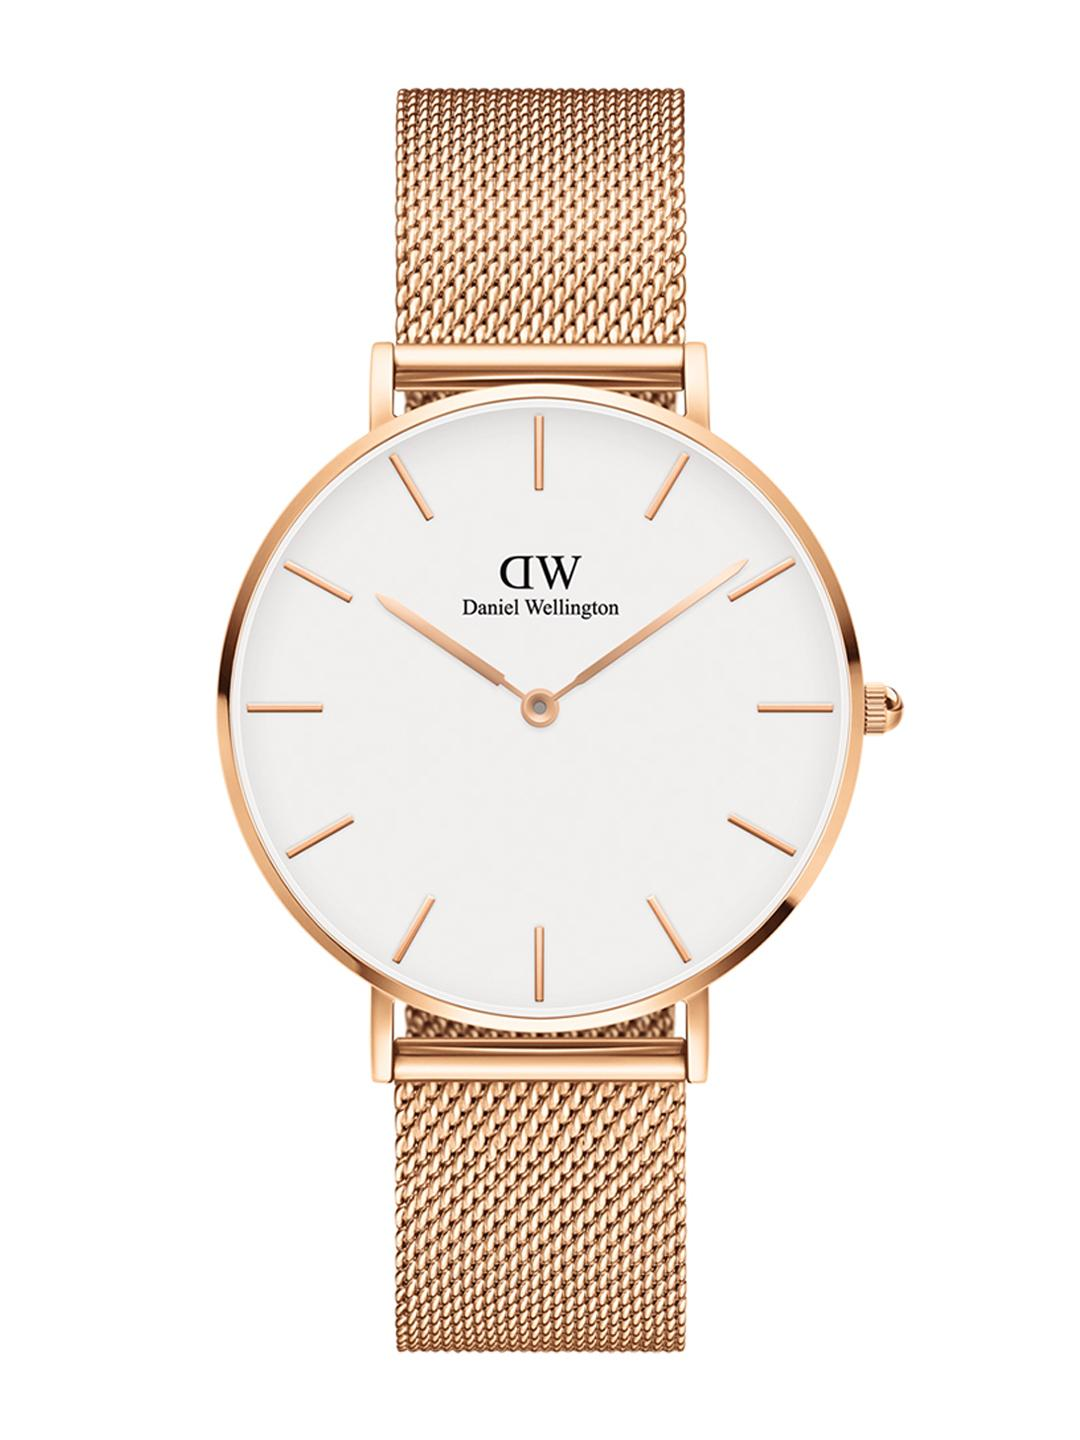 Daniel Wellington Unisex White Analogue Watch DW00100305